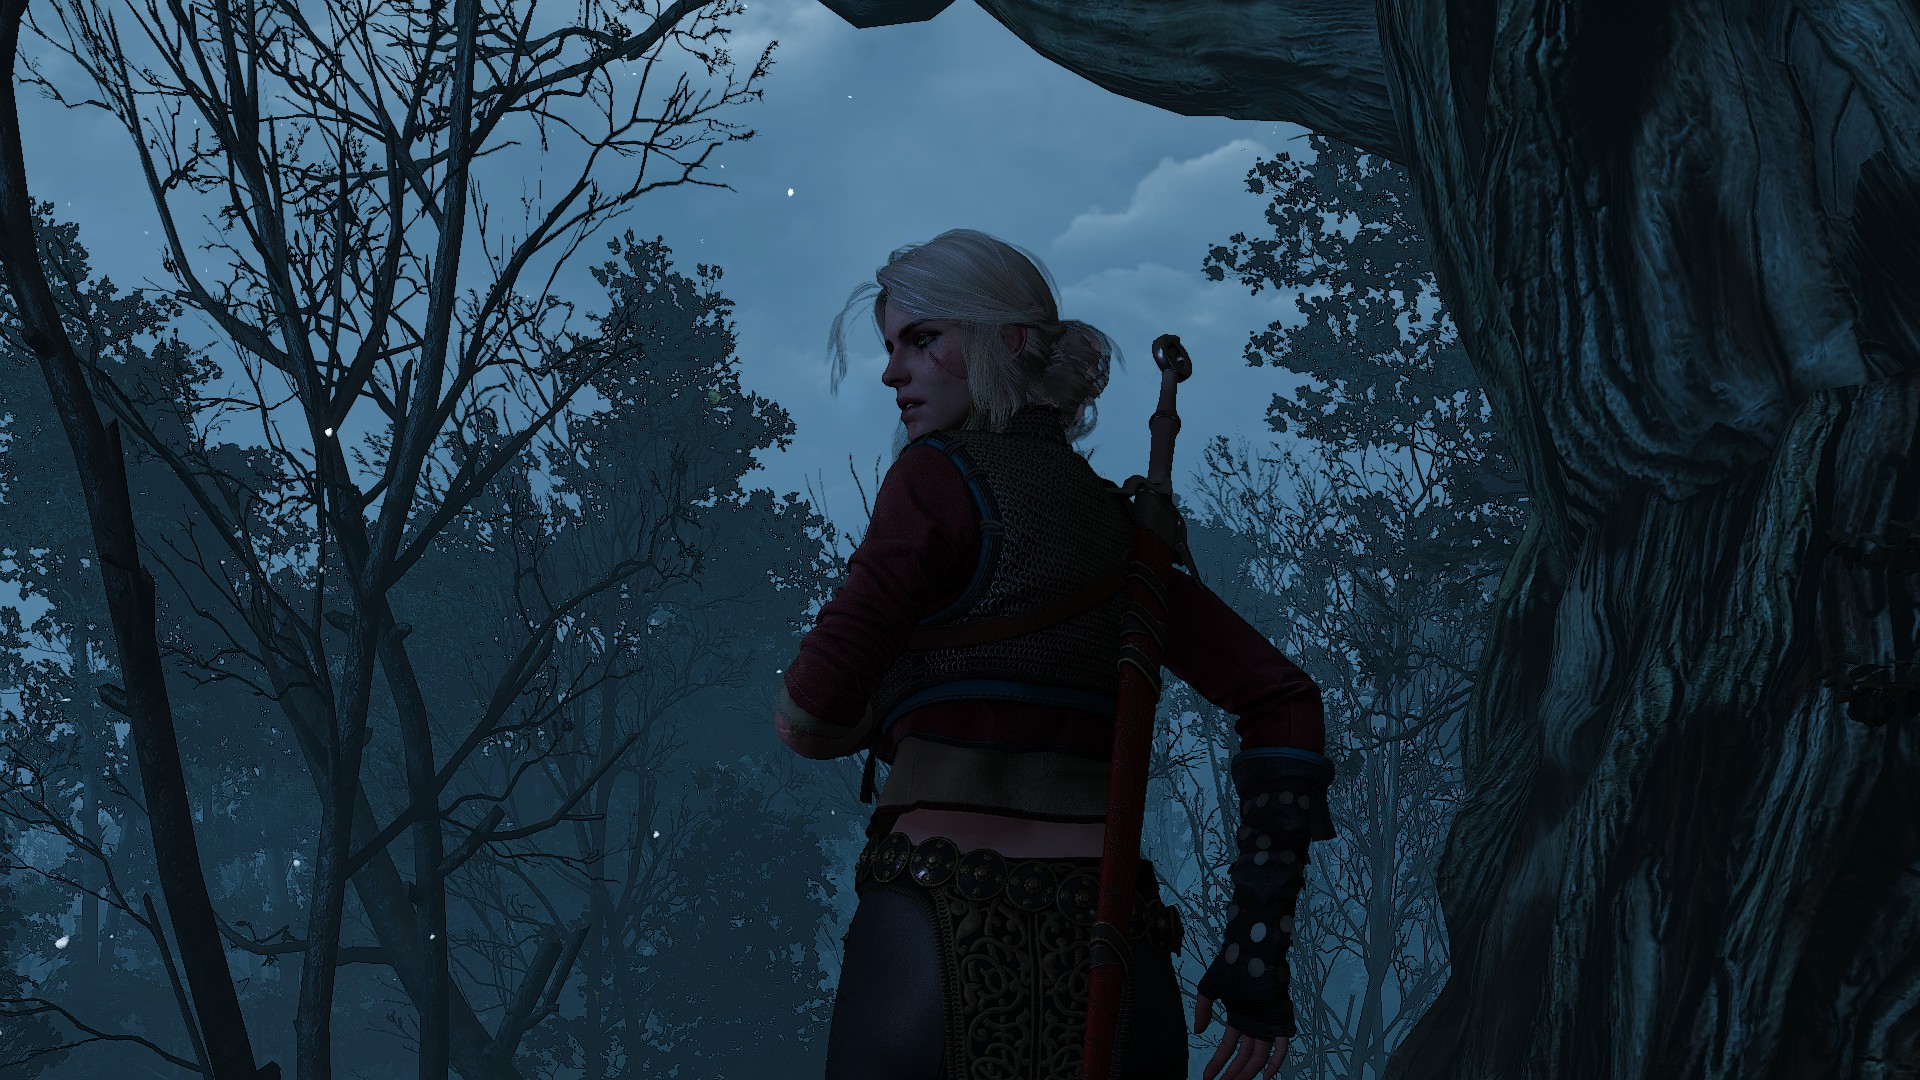 Ciri's Story: Fleeing the Bog